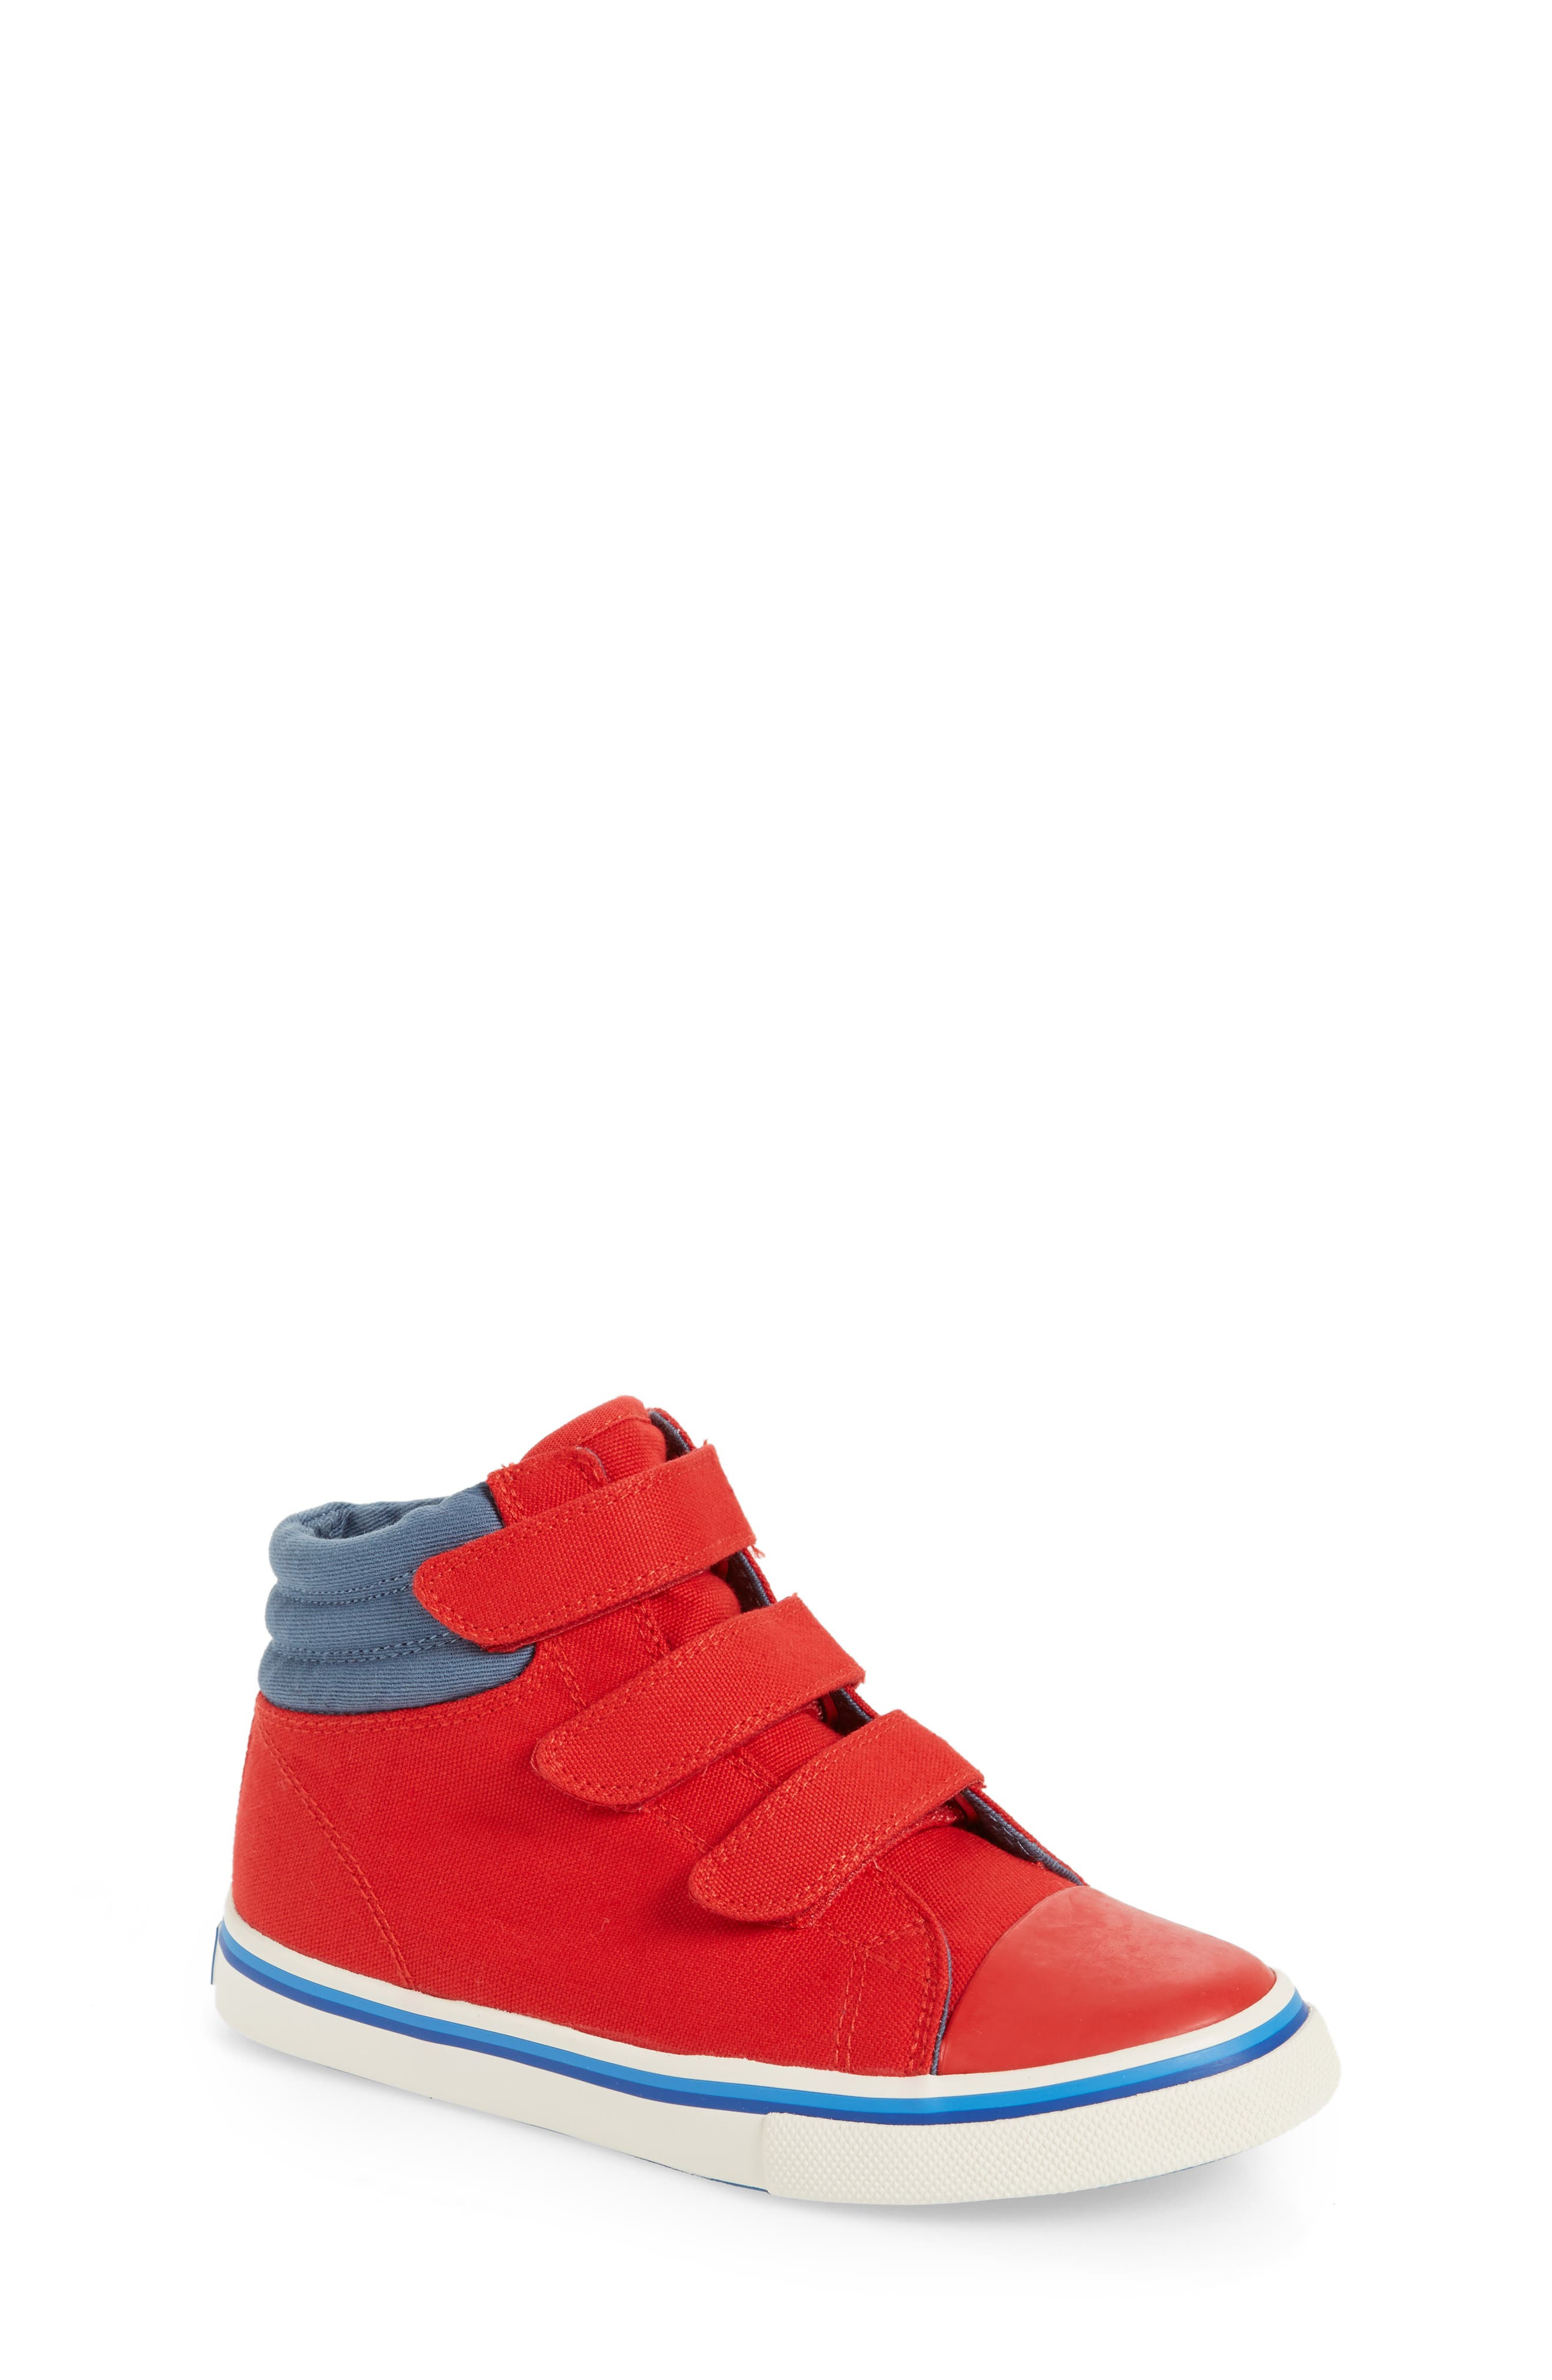 High Top Sneaker,                             Main thumbnail 1, color,                             Salsa Red